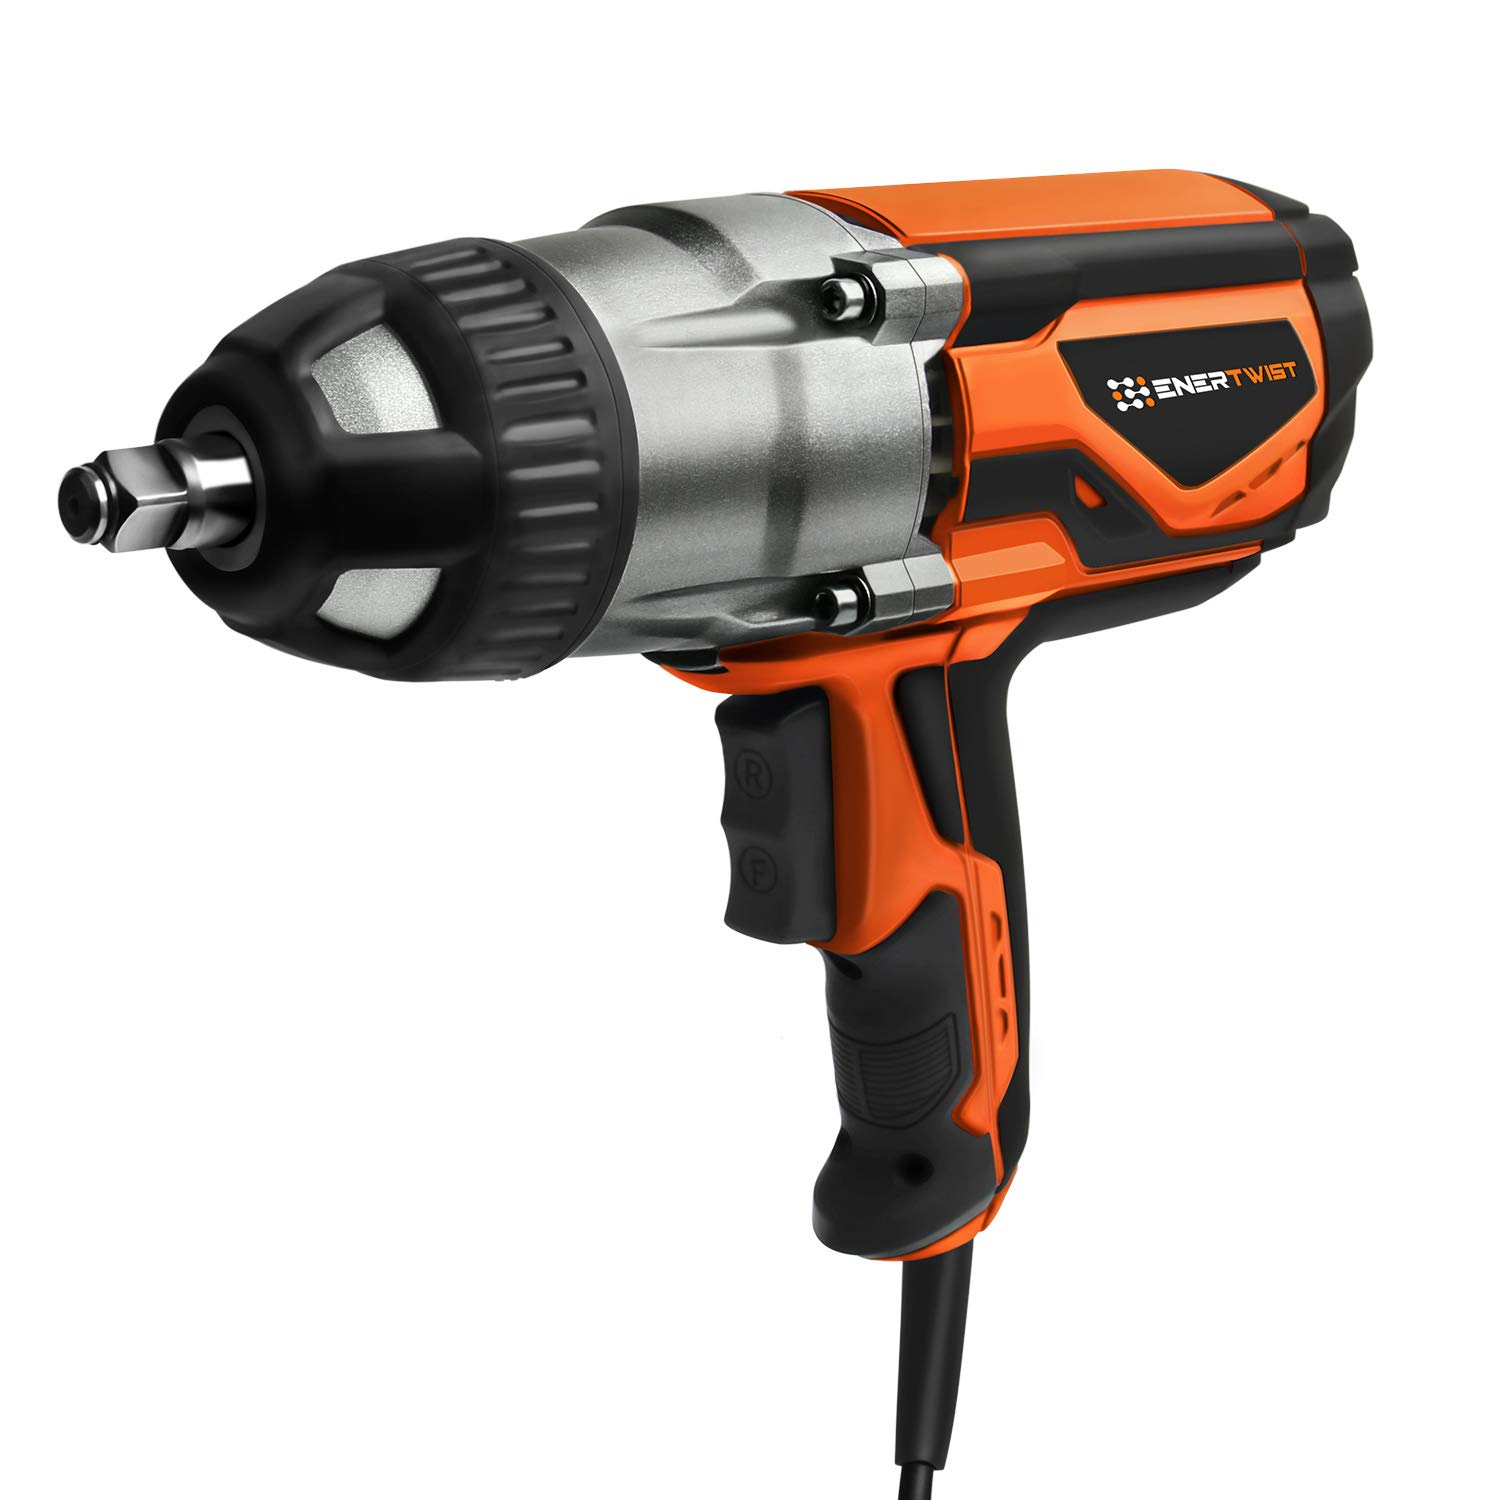 ENERTWIST Electric Impact Wrench - 8.5 Amp 1/2 Inch Heavy Duty Torque Corded Power Wrench with Hog Ring Anvil for Easy Socket Changes